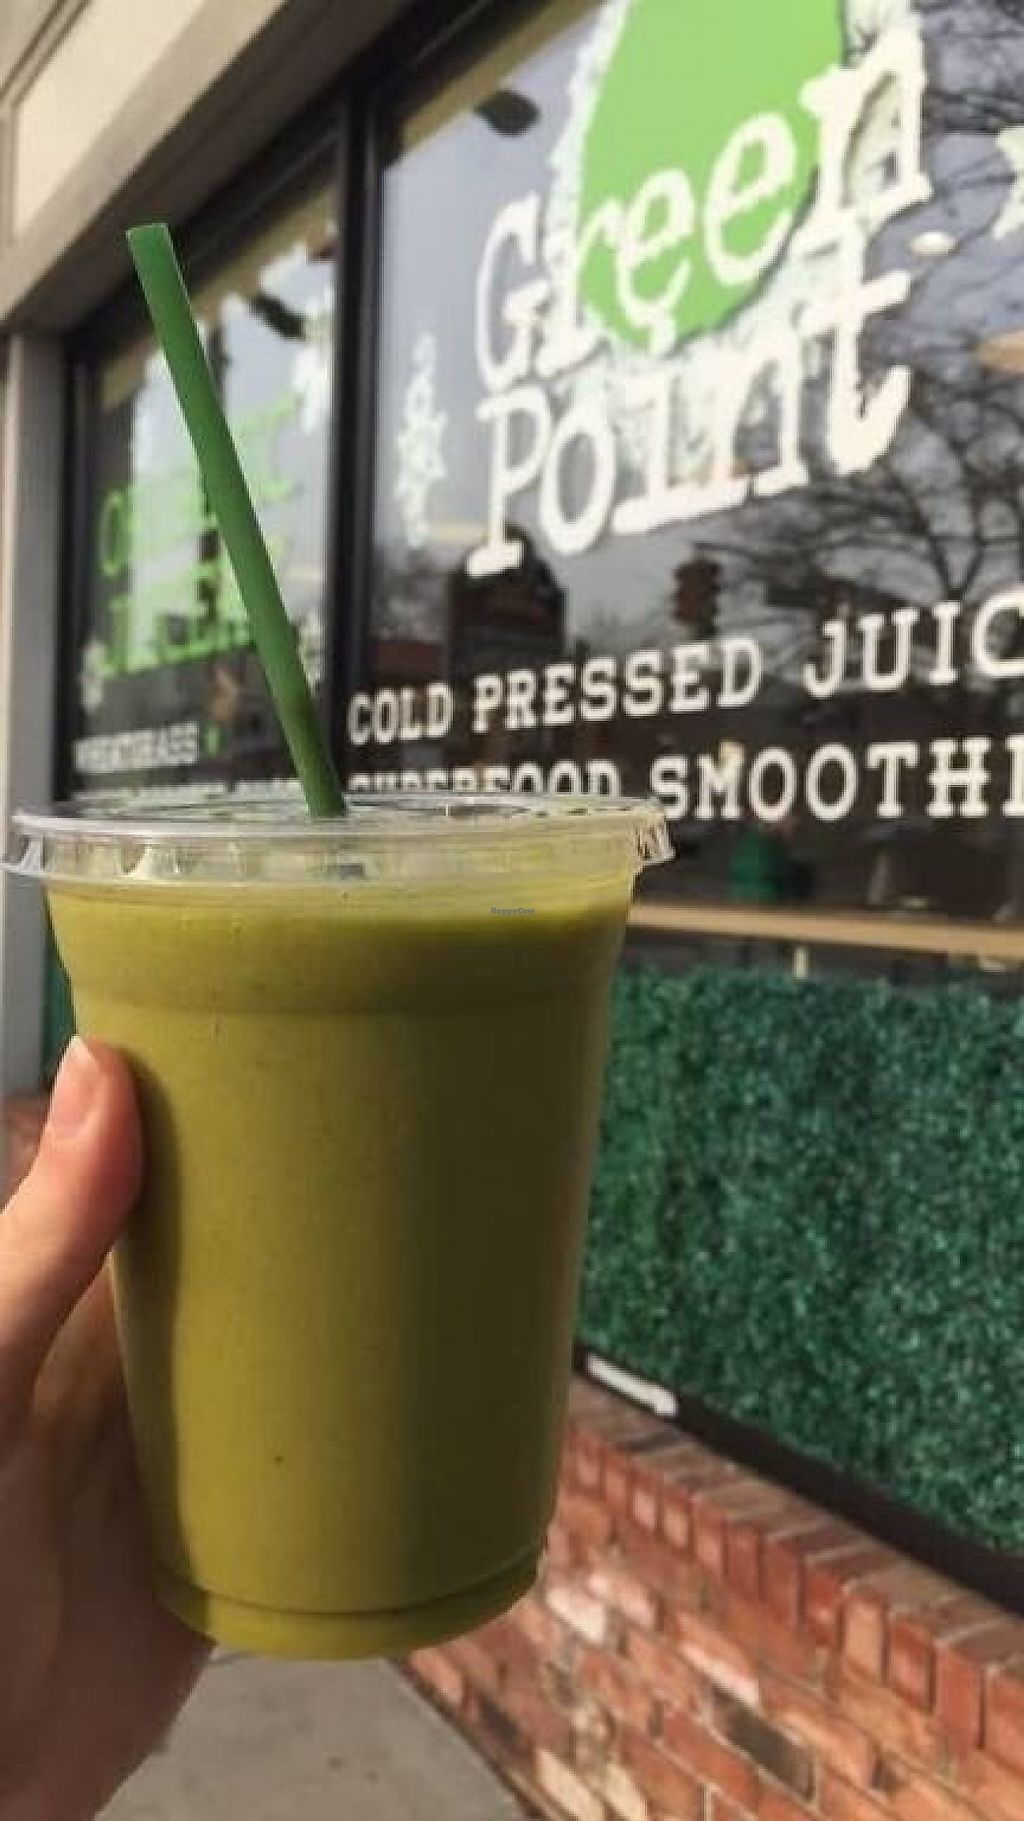 "Photo of Green Point Juicery  by <a href=""/members/profile/EugeneGreen"">EugeneGreen</a> <br/>Organic smoothies and cold pressed juices  <br/> May 5, 2017  - <a href='/contact/abuse/image/65809/255738'>Report</a>"